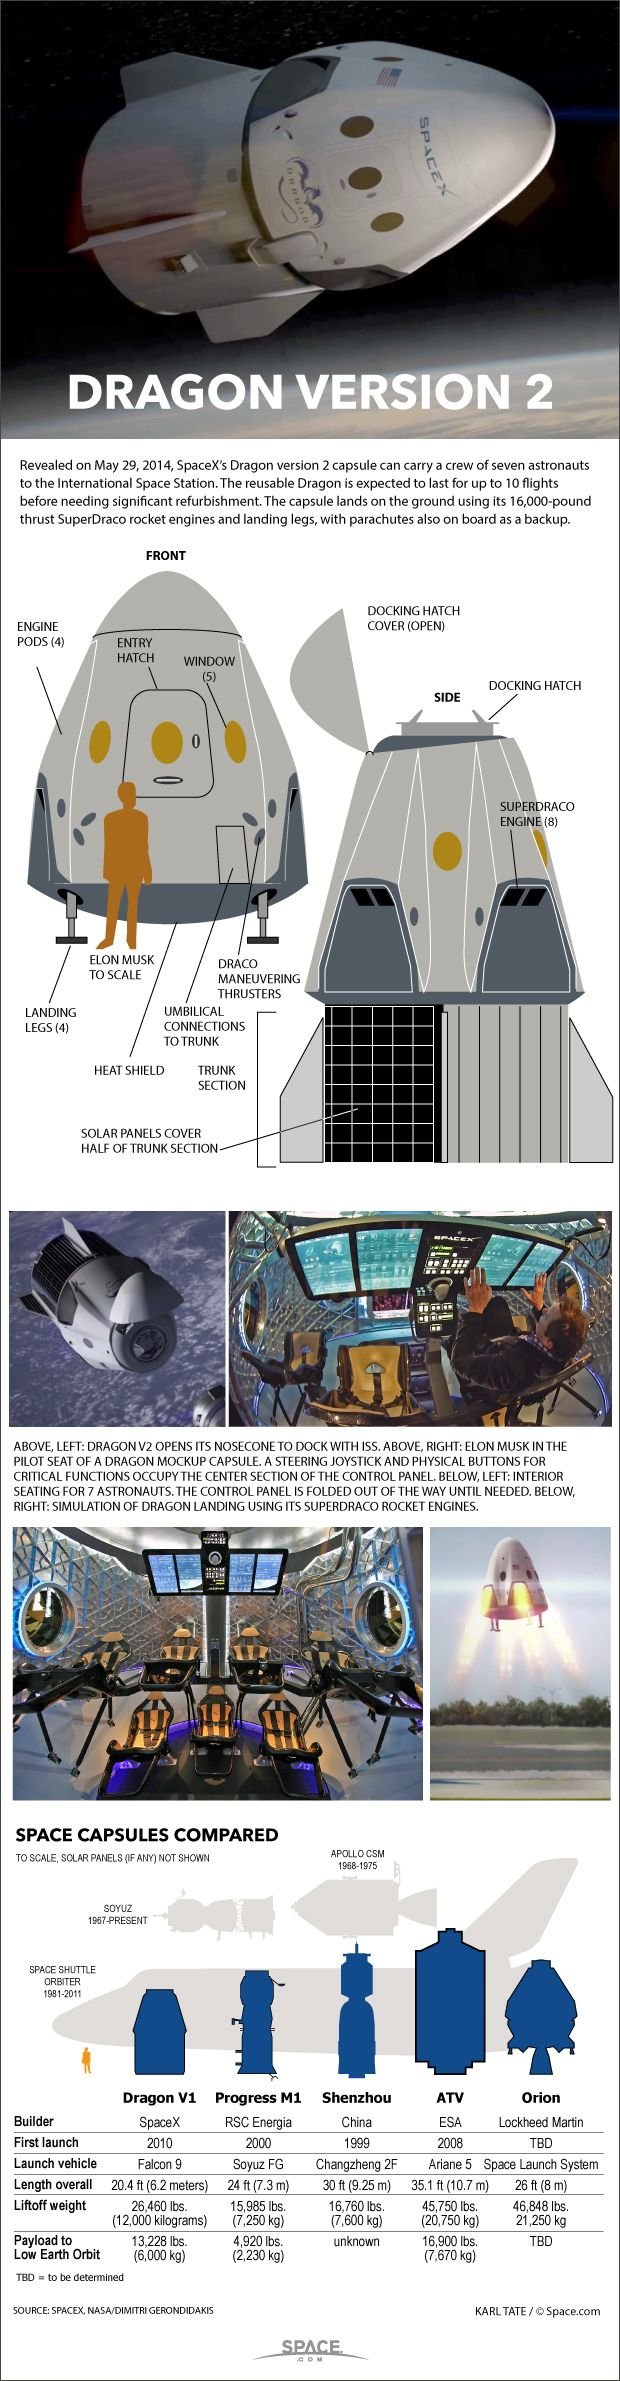 SpaceX's Dragon Version 2 capsule is designed to carry seven astronauts to the International Space Station. See how it works in this Space.com infographic.